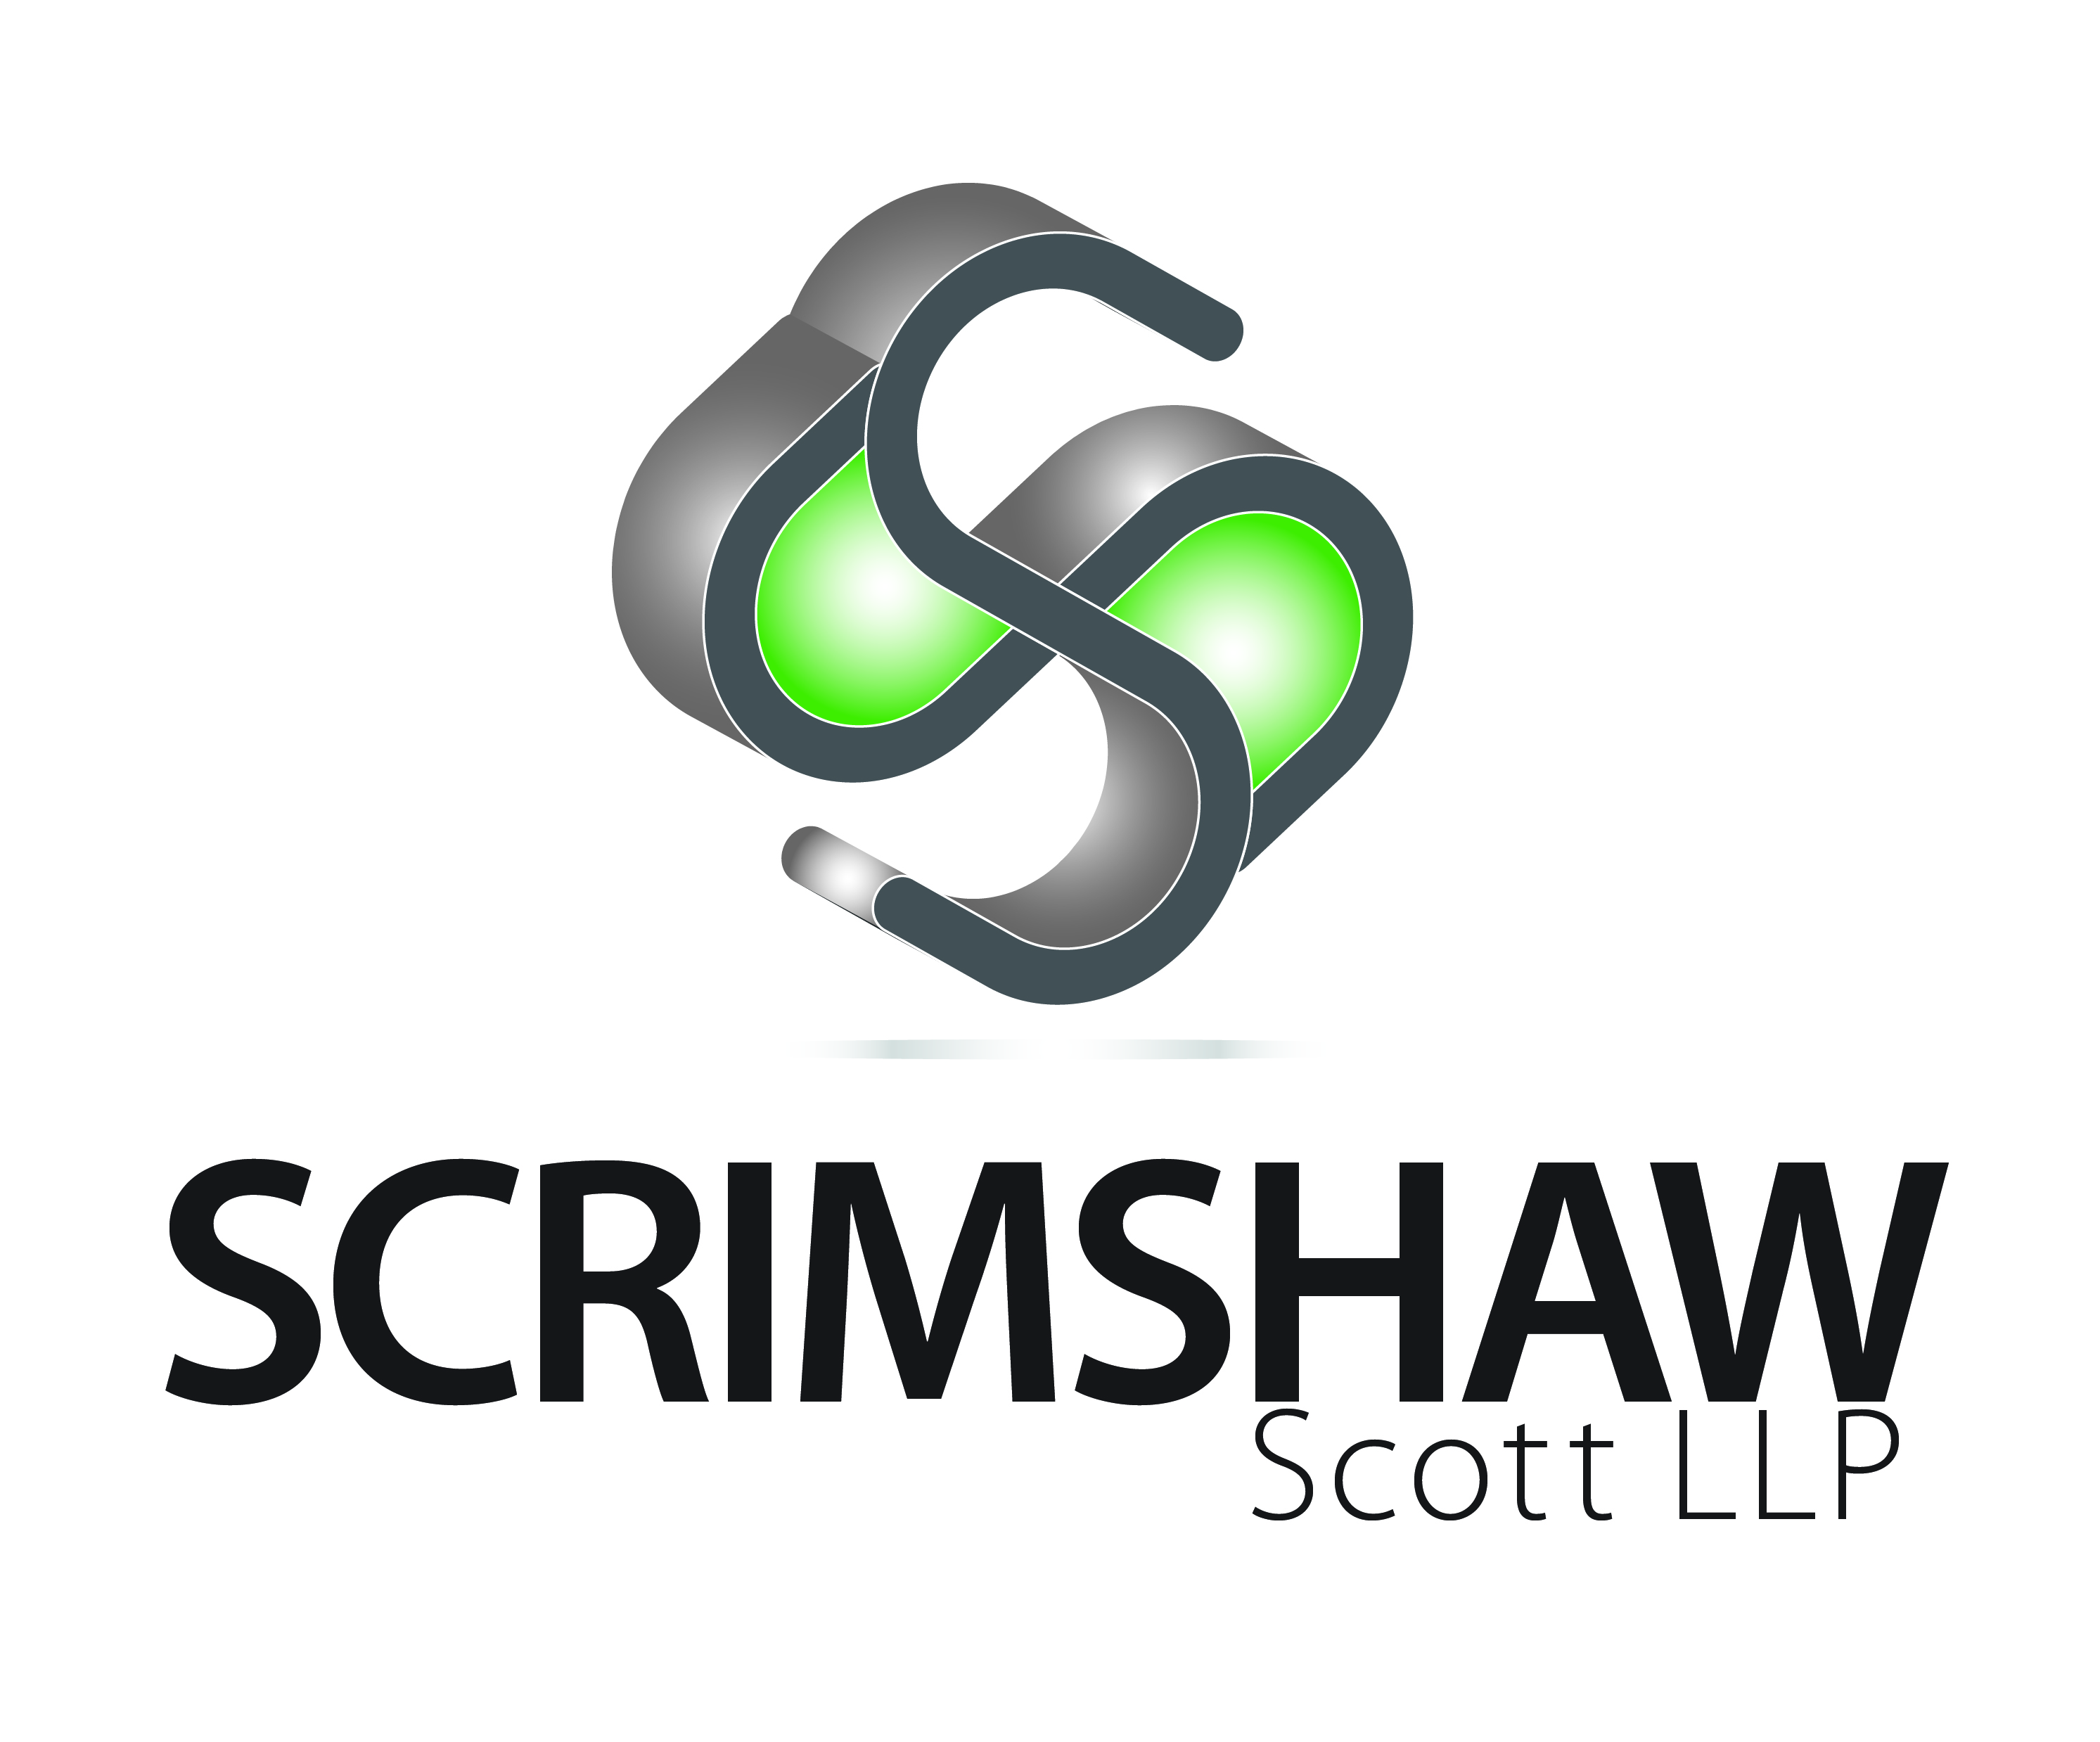 Logo Design by Waseem Haider - Entry No. 34 in the Logo Design Contest Striking Logo Design for law firm SCRIMSHAW  SCOTT  LLP.